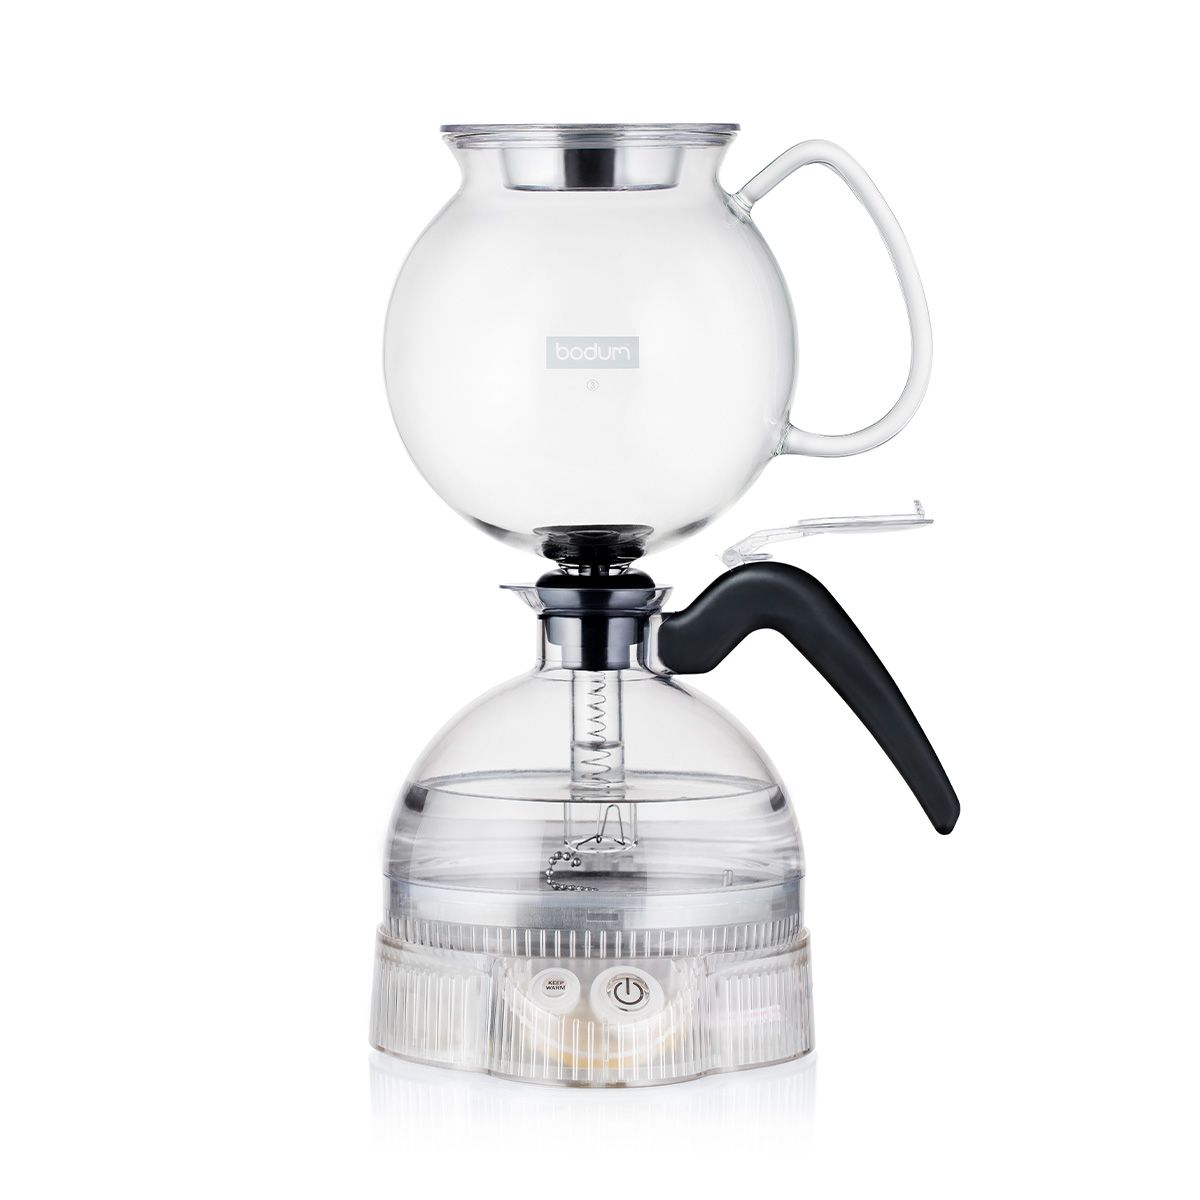 Vacuum Coffee Maker ePEBO 1.0 L